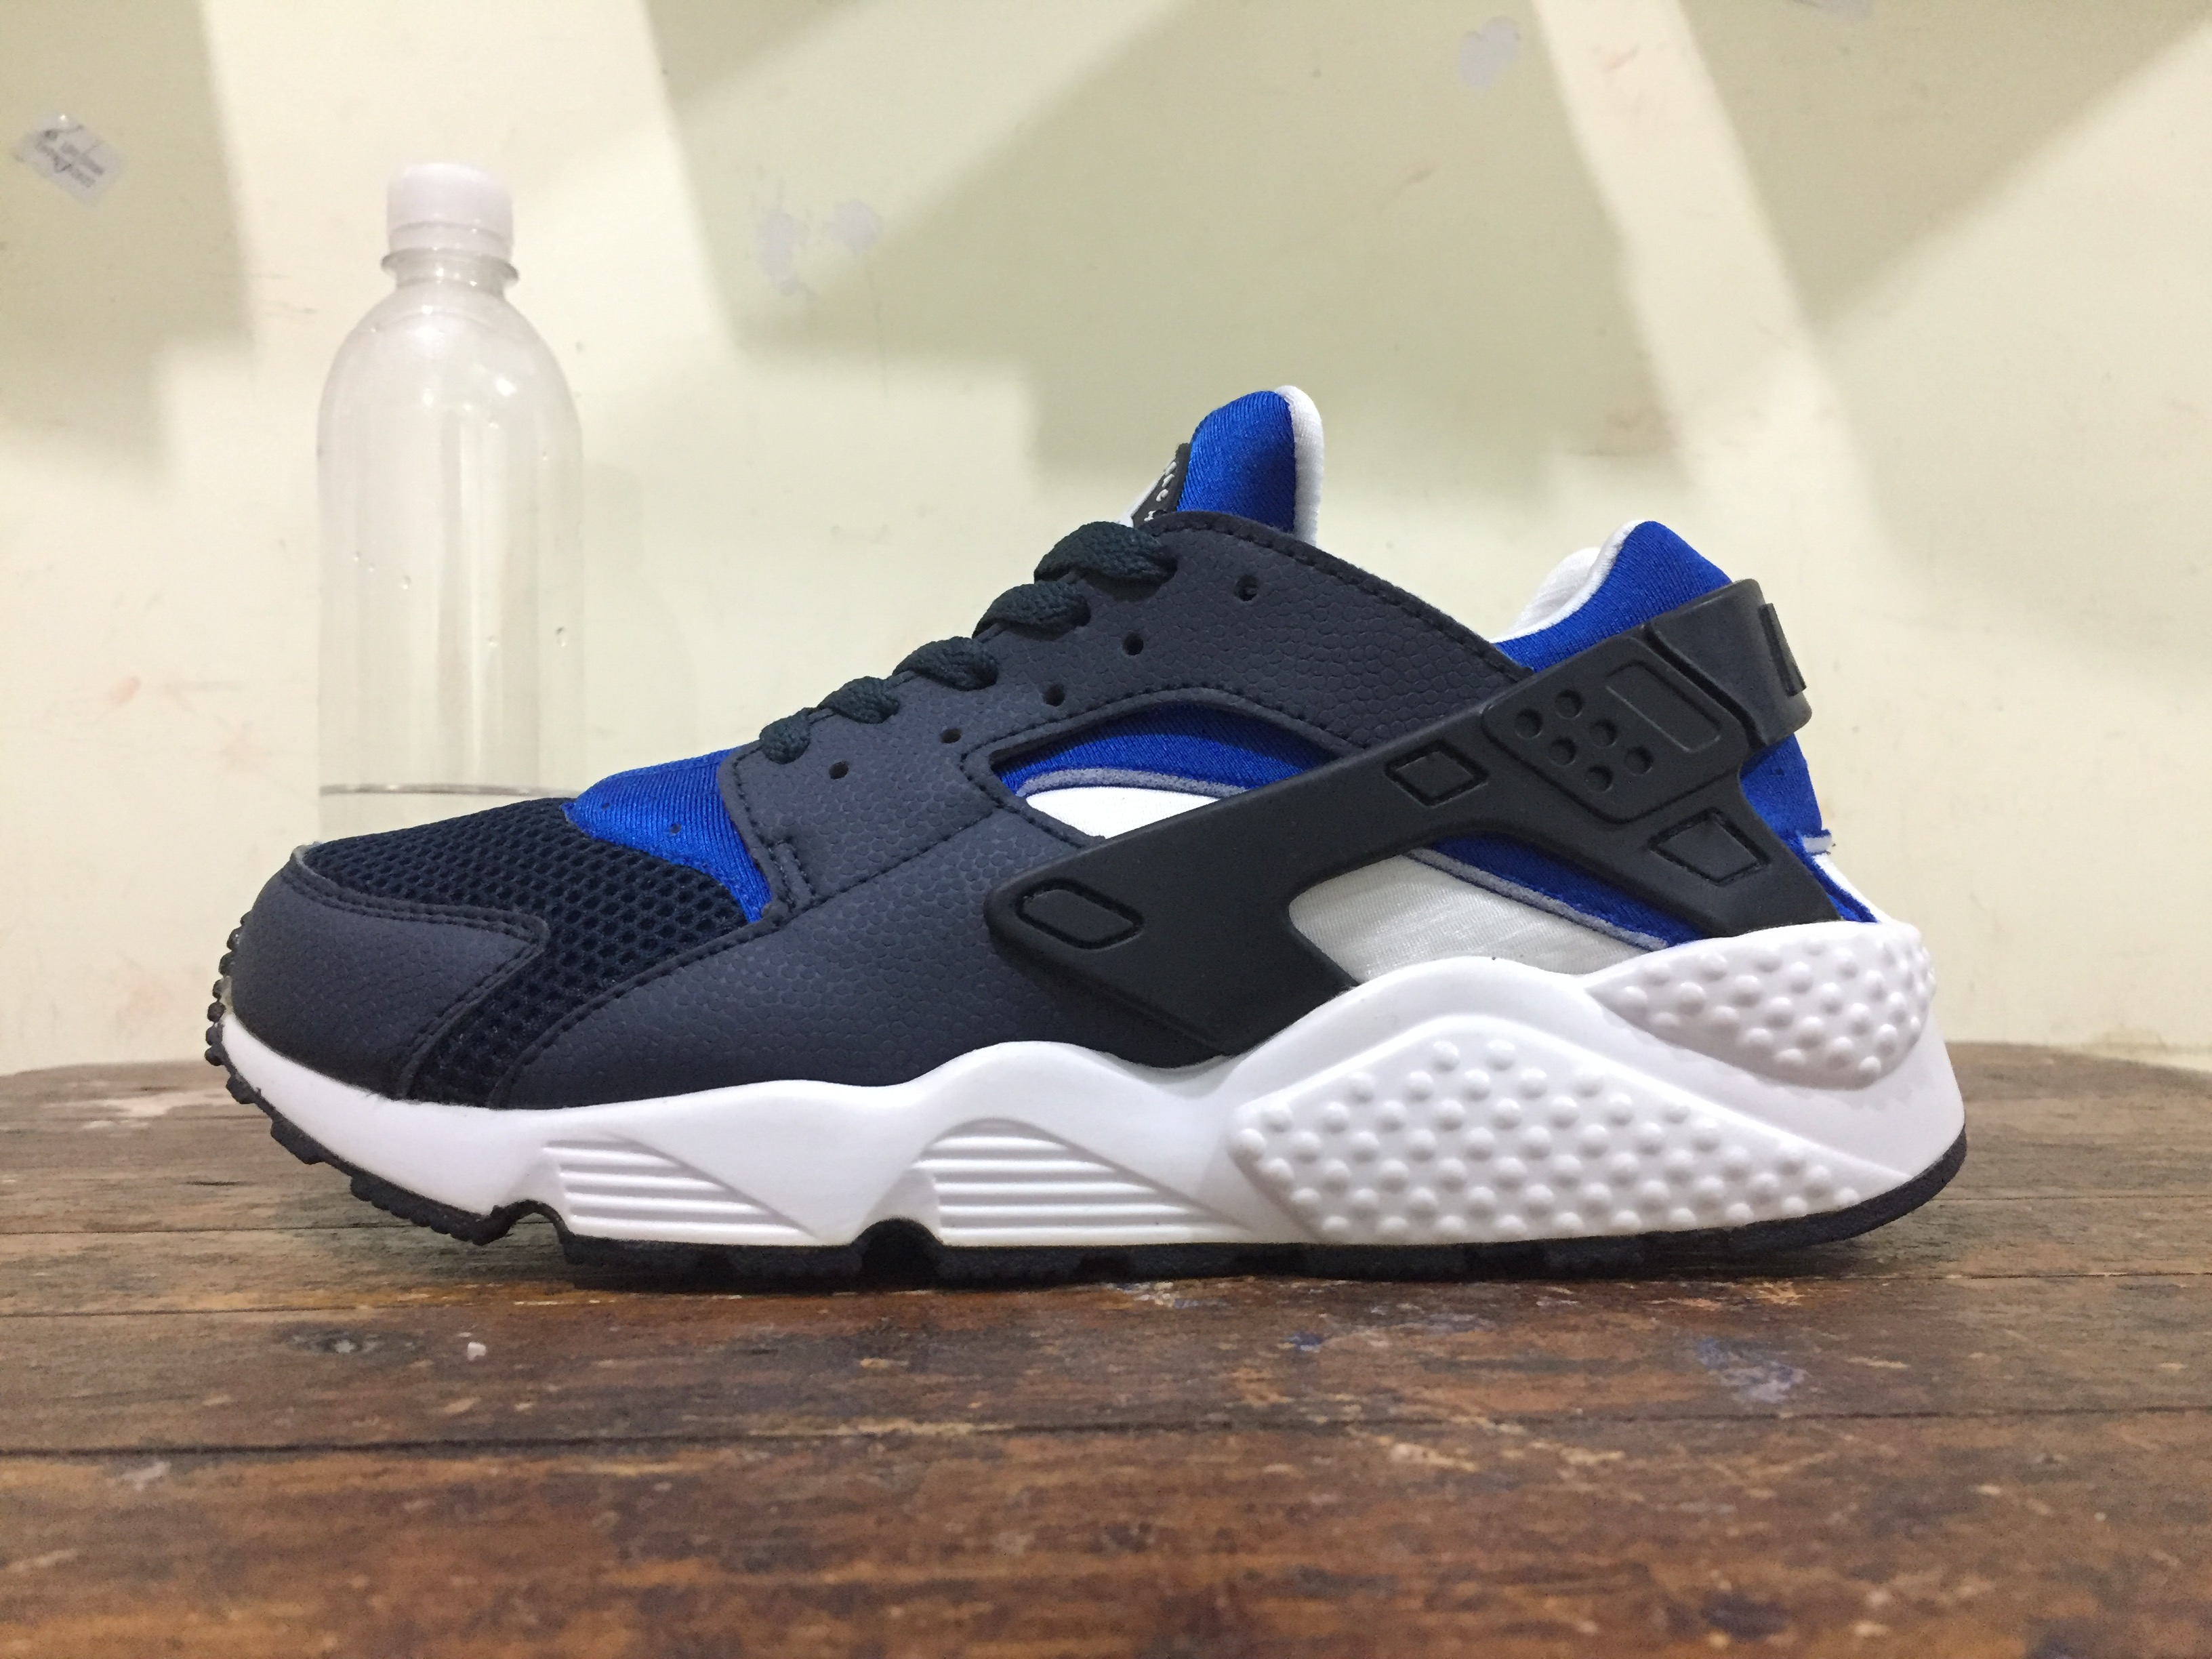 71c942d9ac9f4 ... wholesale nike air huarache dark blue white. u2039 u203a 1e830 4cbdc